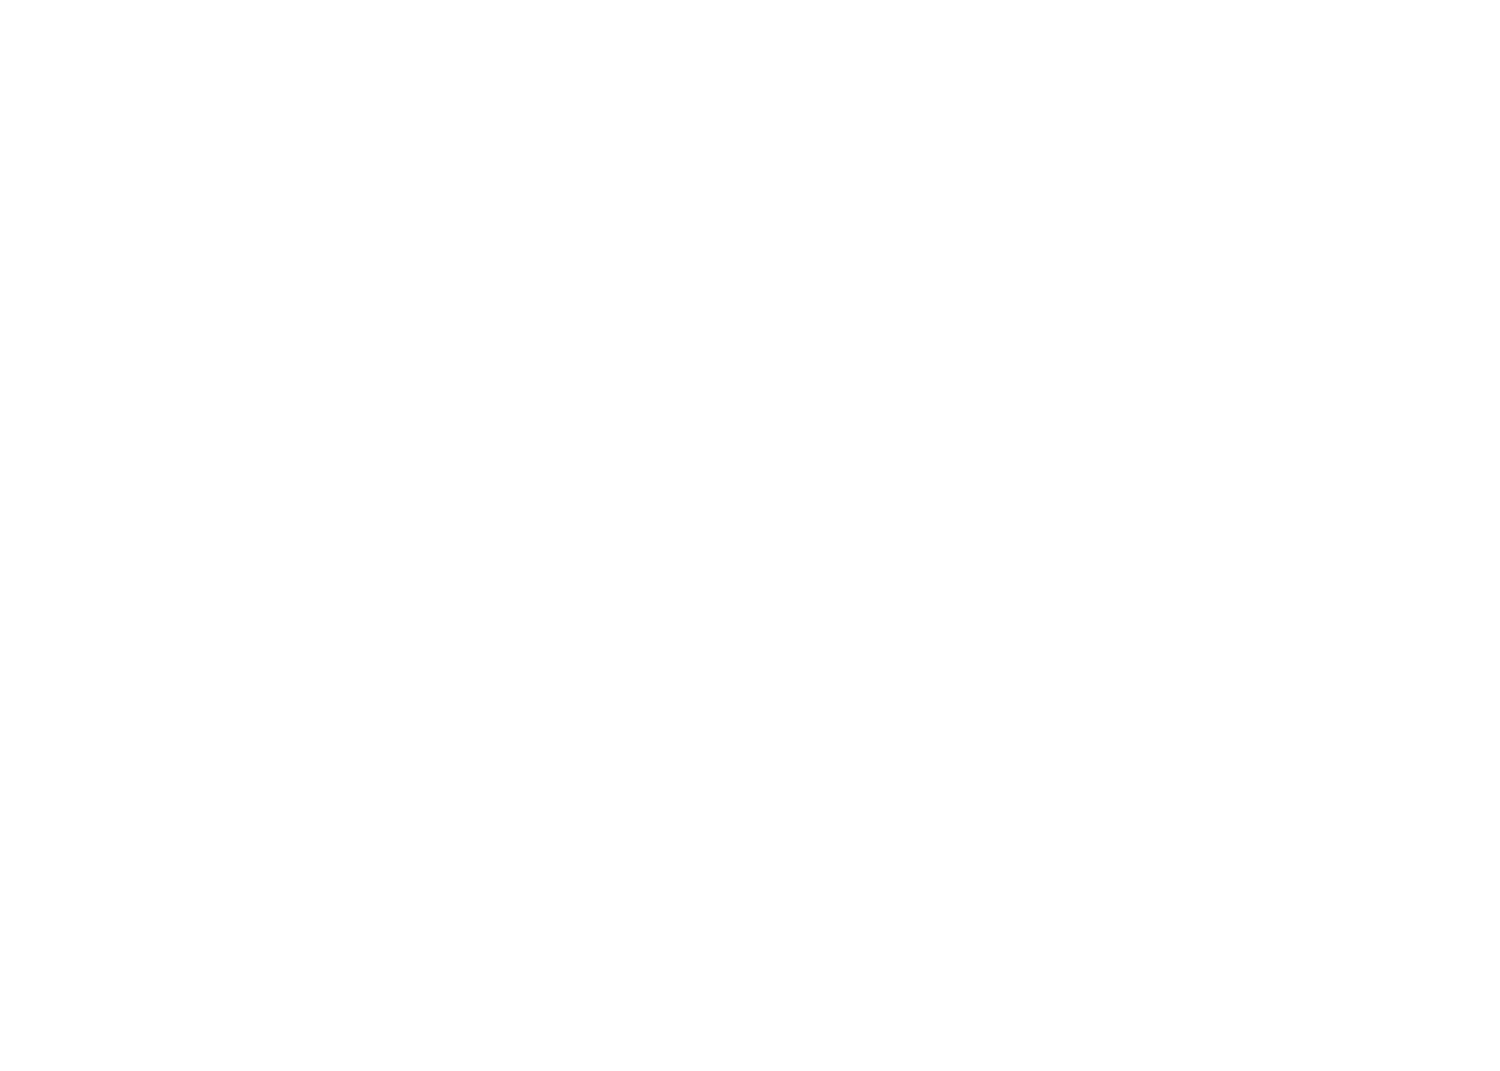 Palm Beach Synagogue